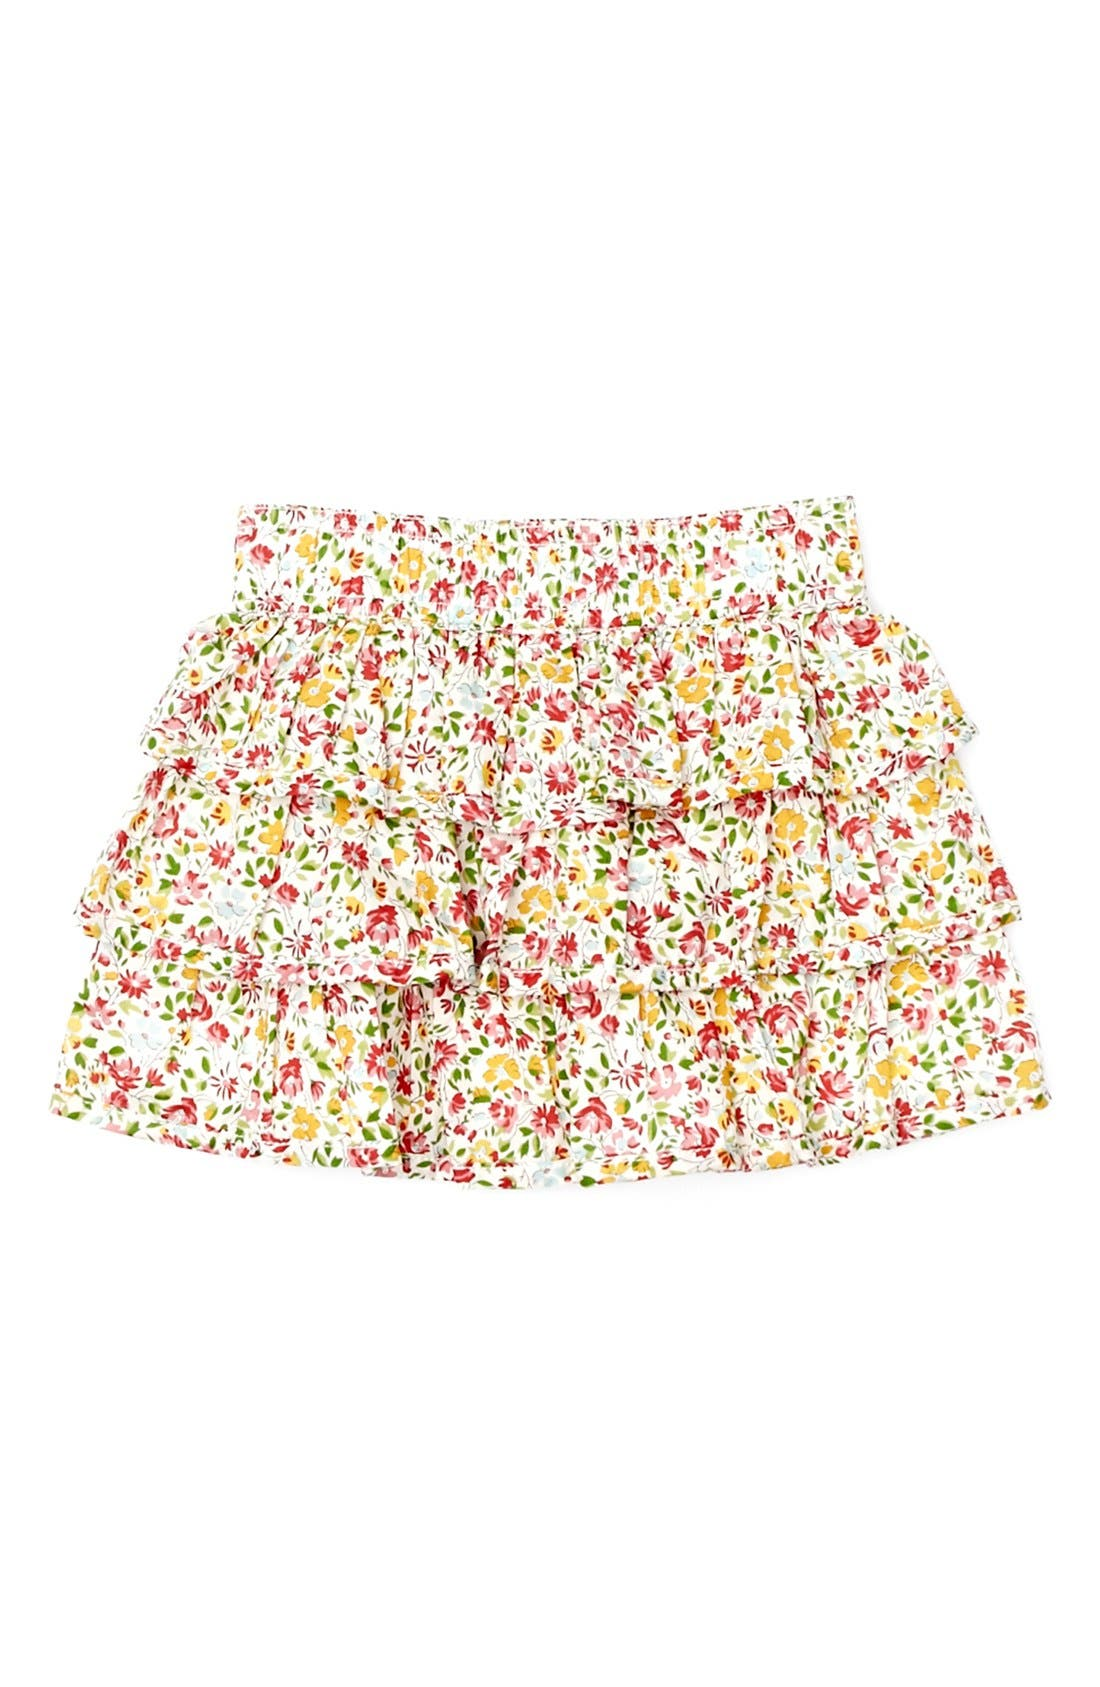 Alternate Image 1 Selected - Peek 'Dita' Skirt (Baby Girls)